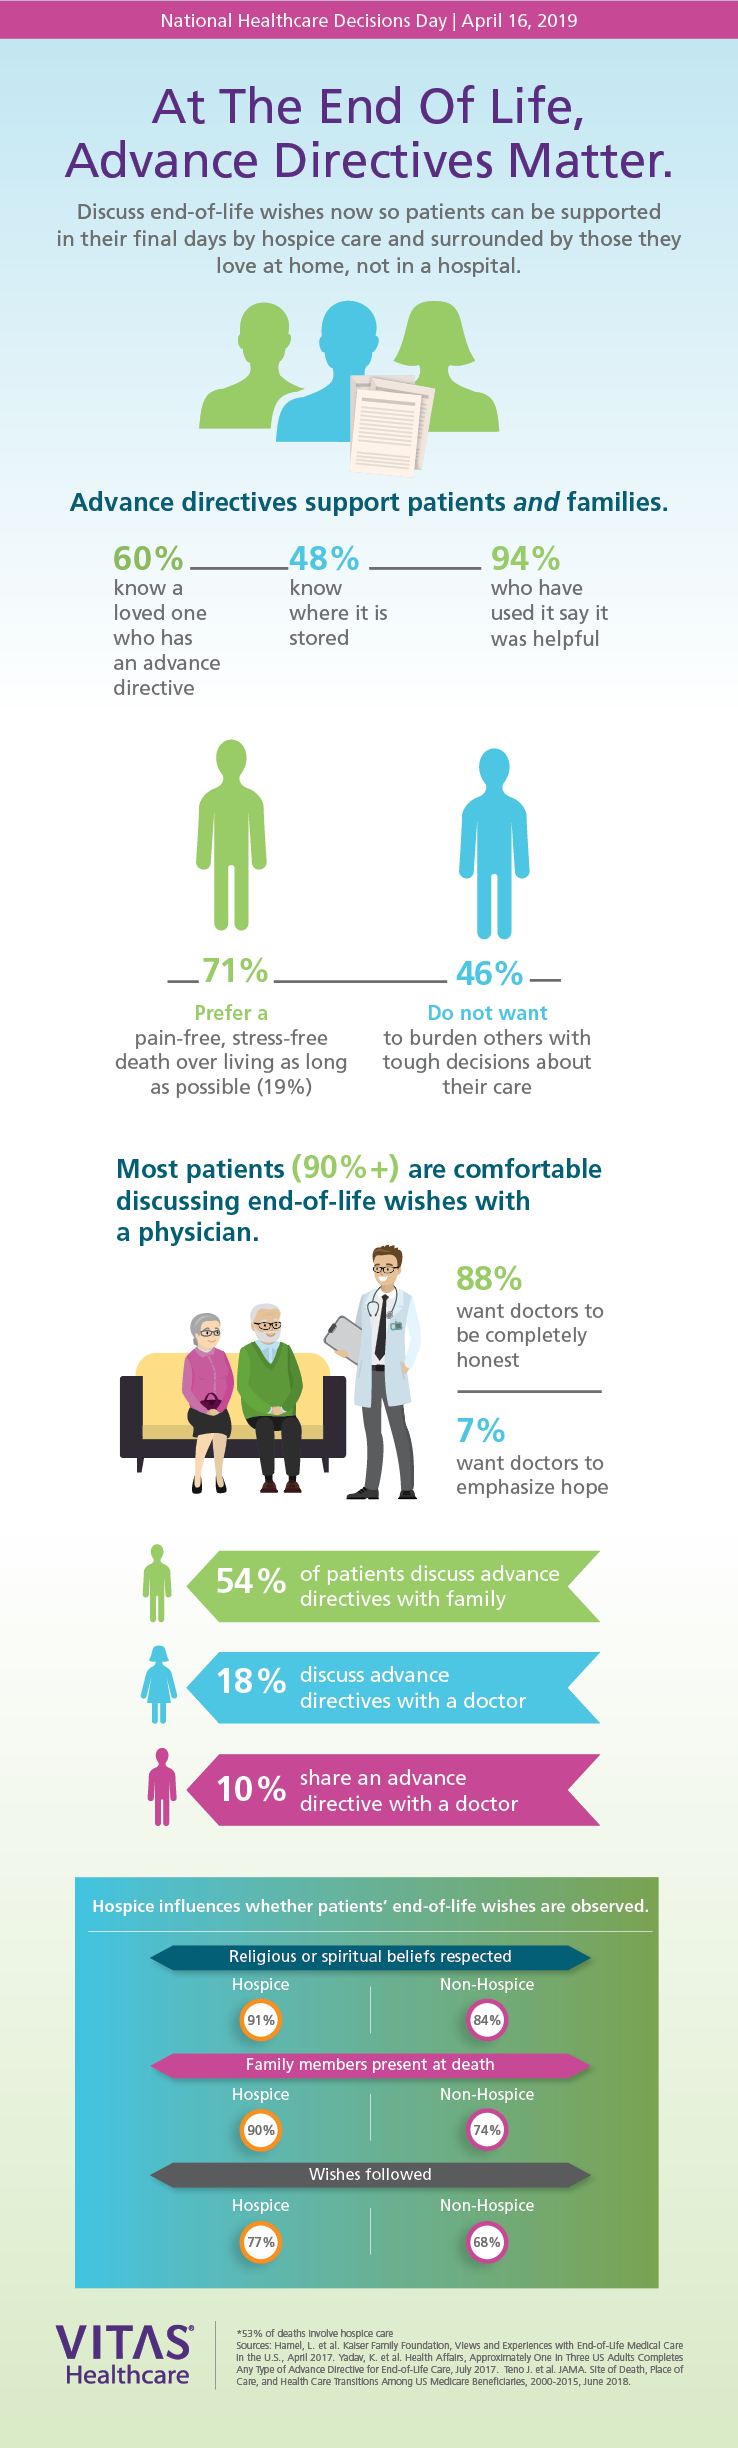 An infographic shows a vast majority of adults are comfortable talking to a physician about end-of-life wishes, and most prefer a pain-free, stress-free death over living as long as possible